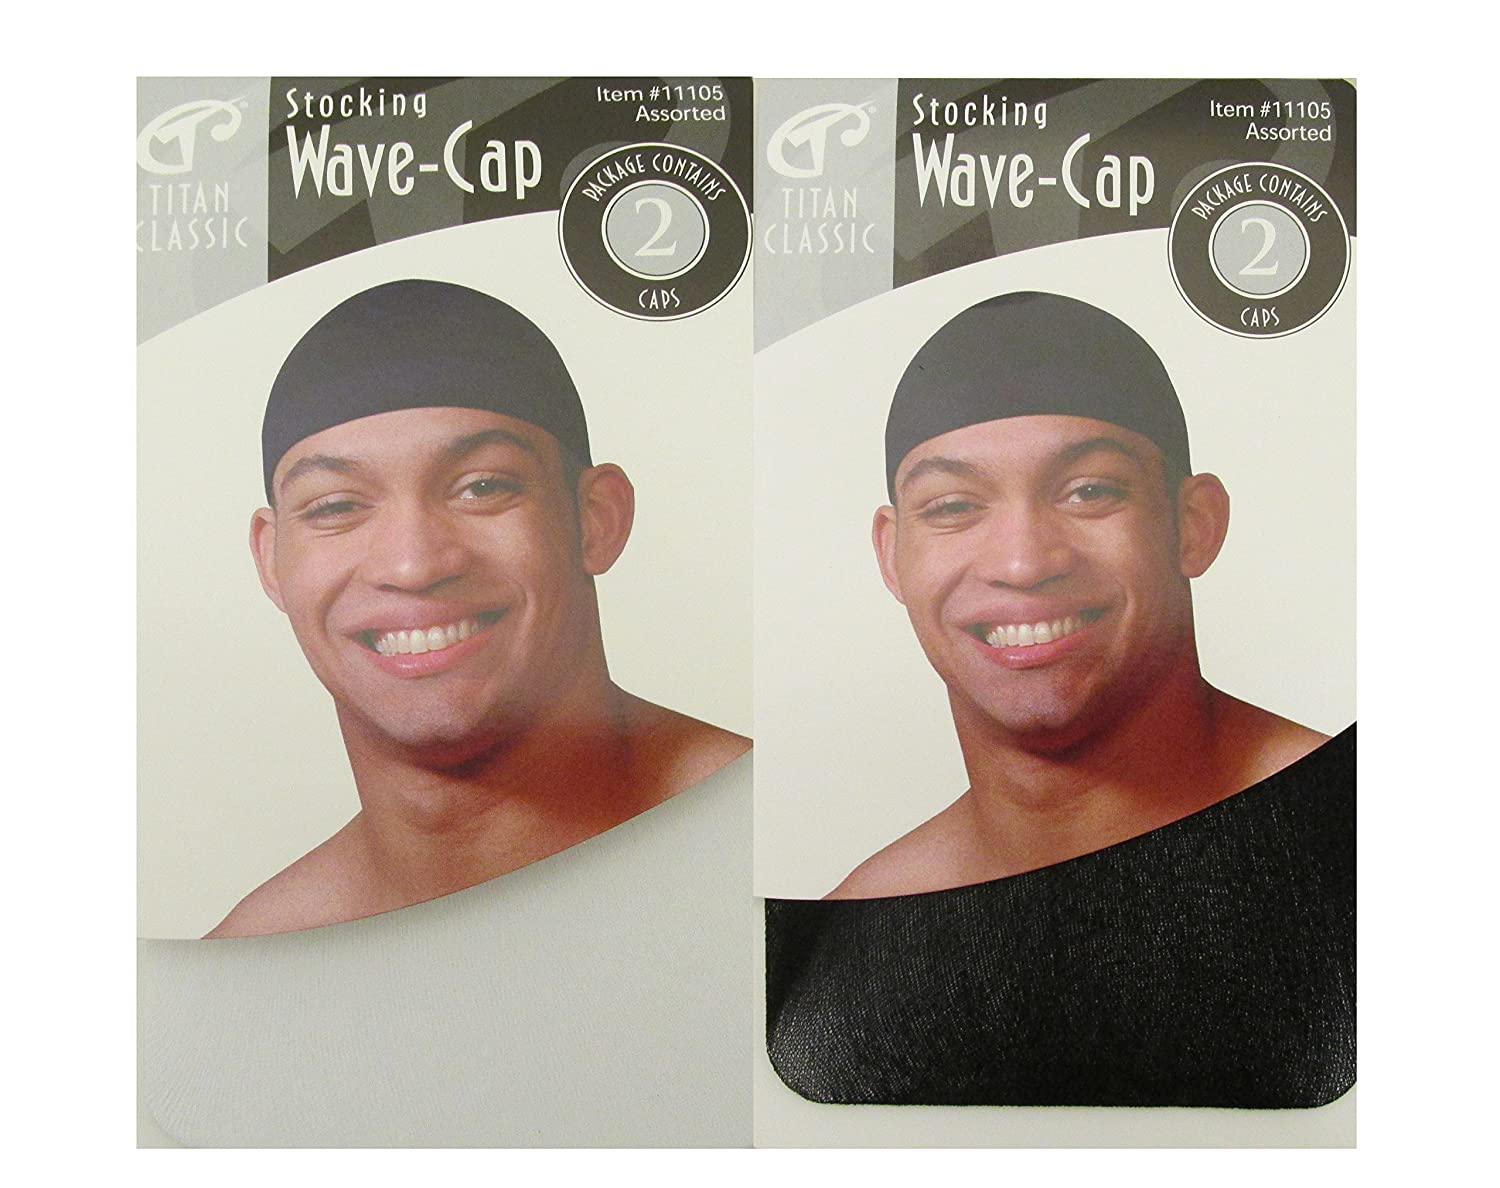 e2966f05 Titan Classic Stocking Wave Cap #11105 Black - 4 caps, Ultra stretch, fits  all sizes, one size, fits most, keeps on...